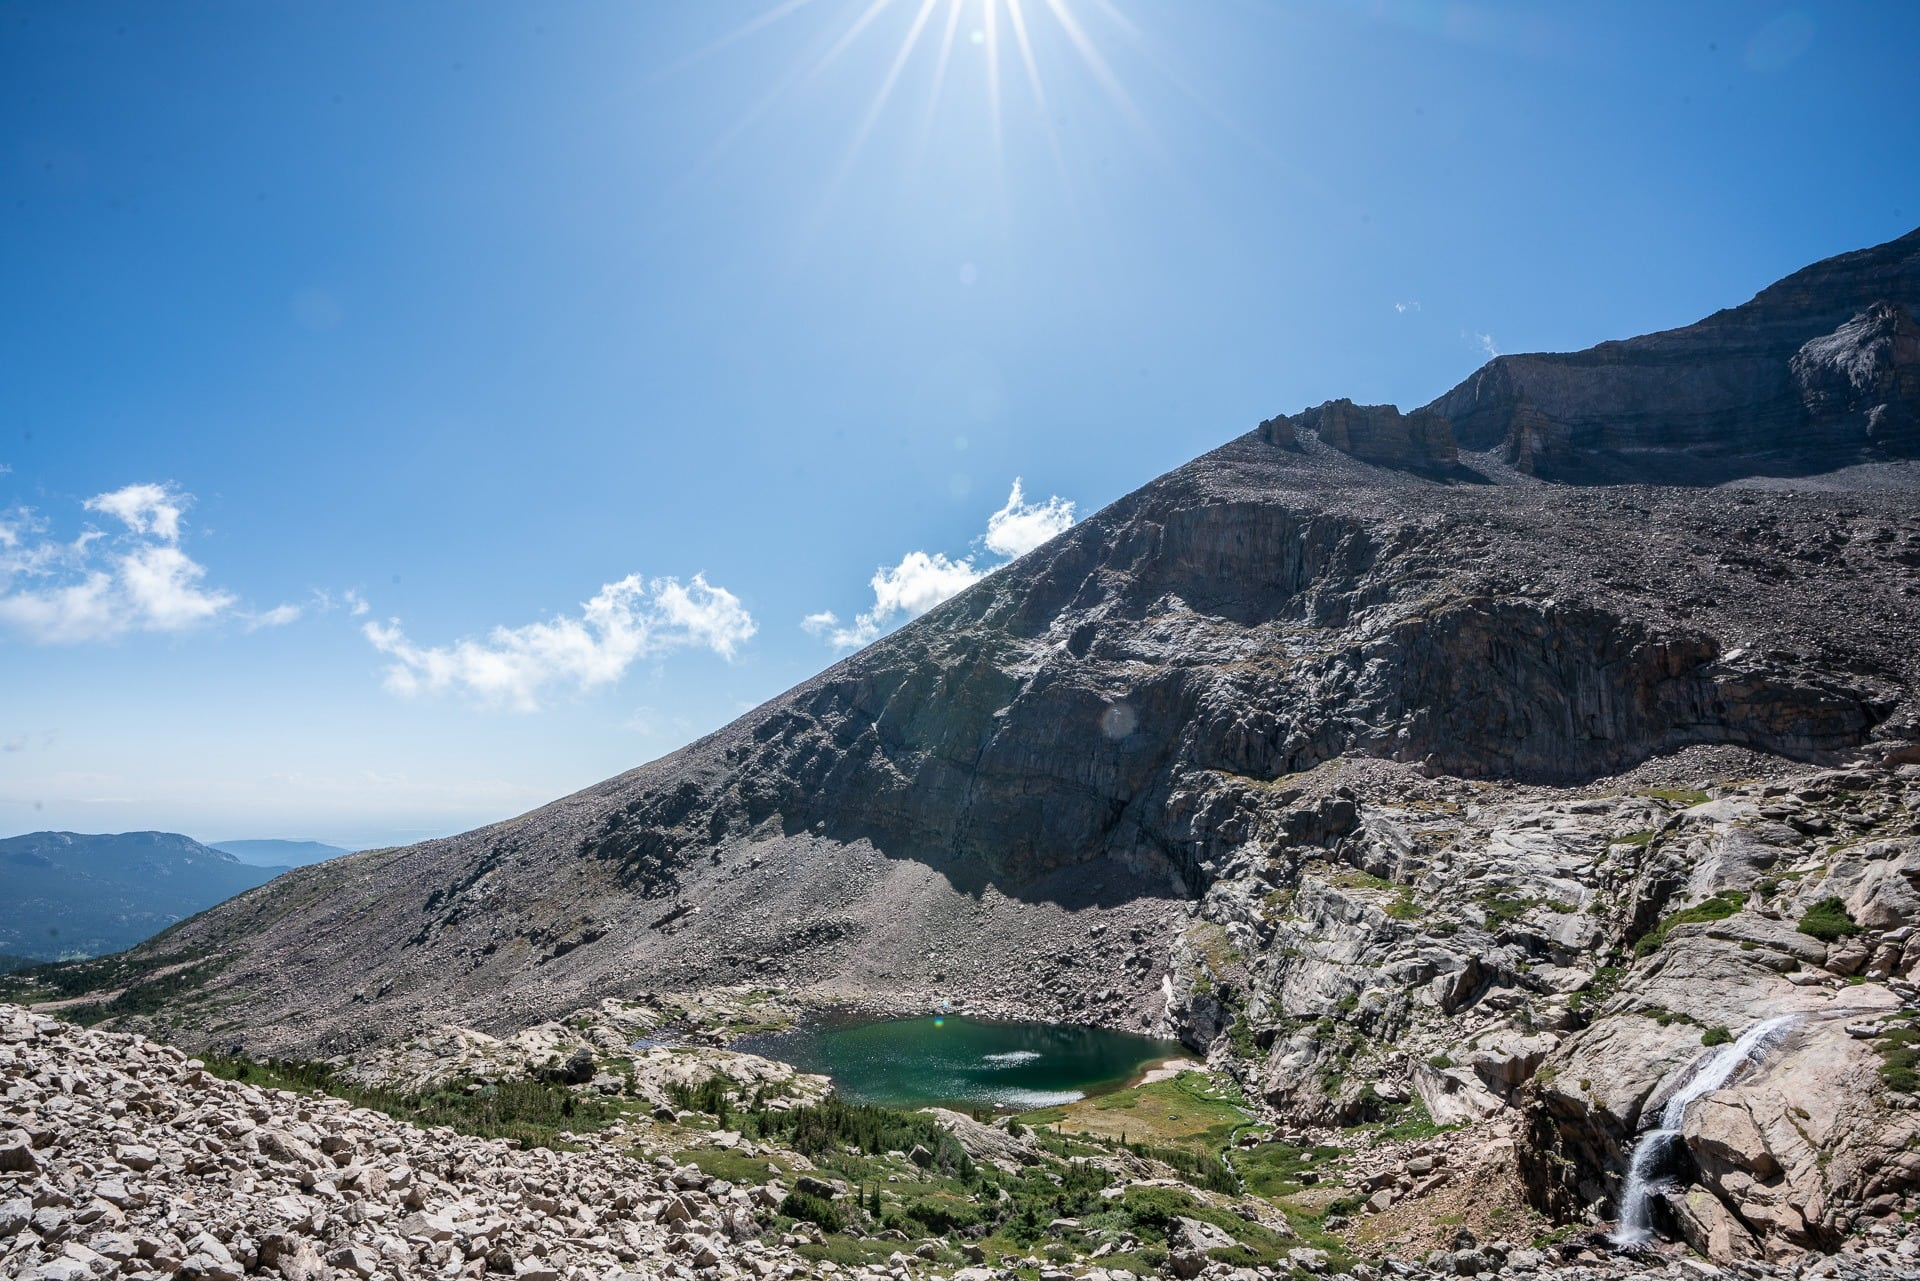 Chasm Lake Trail // Get our guide to the best day hikes in Rocky Mountain National Park including distances, trail descriptions, what to be prepared for, and more.